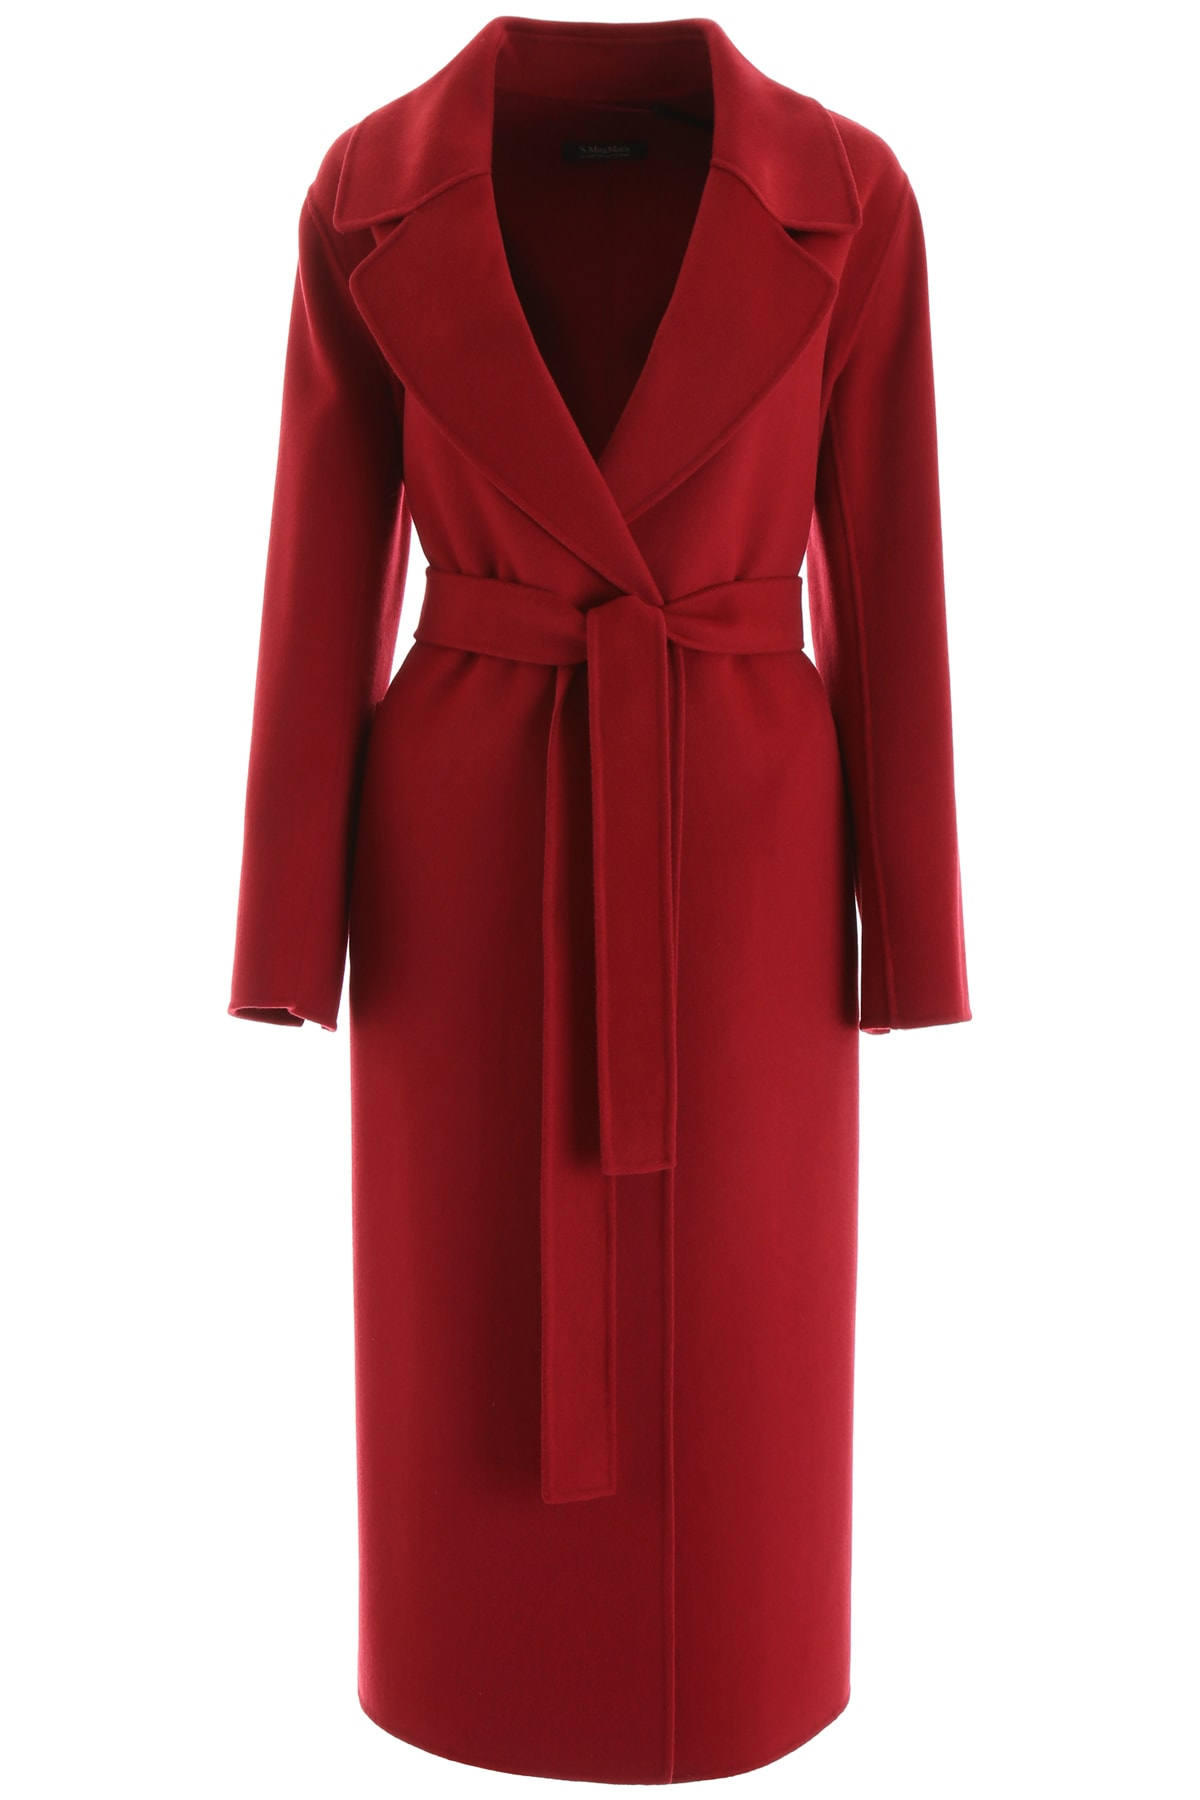 S Max Mara Here is The Cube Vincent Wrap Coat